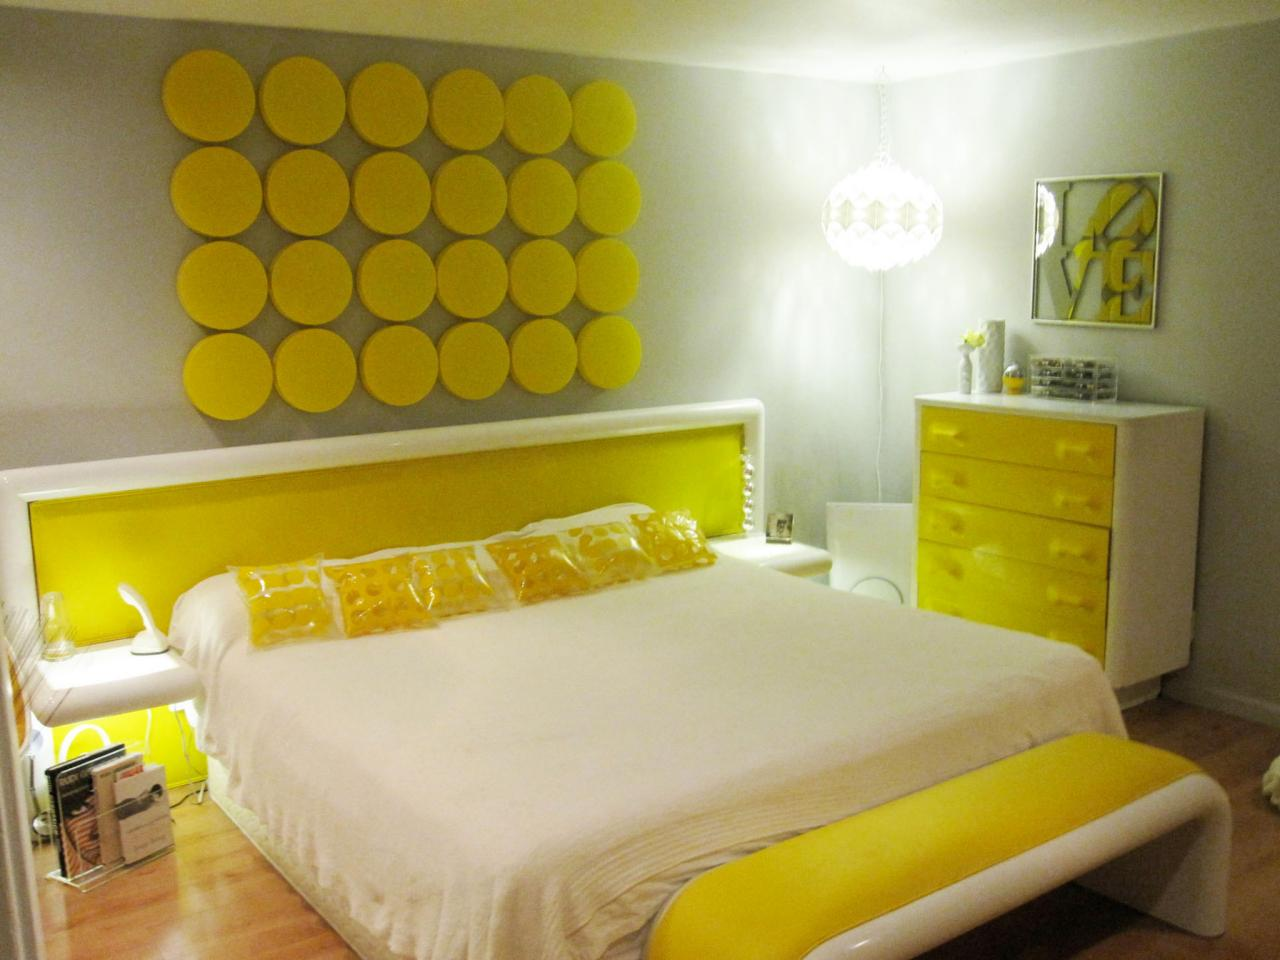 Add Bright Corner Lamp in Grey Paint Colors Bedroom with Yellow Wall Ornament and Headboard